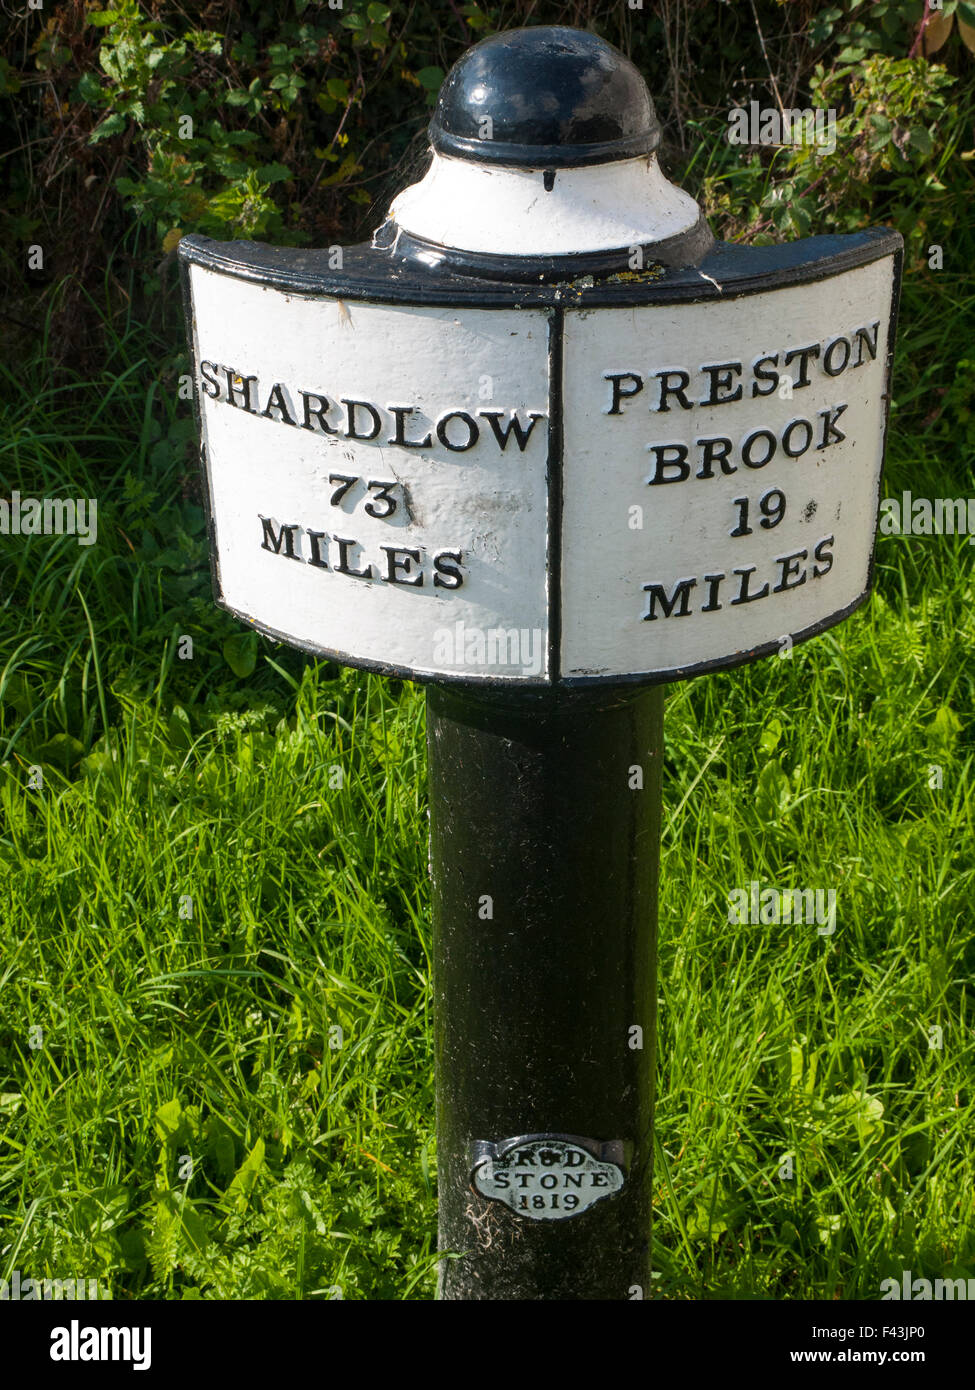 Milepost on the Trent and Mersey Canal in Elworth Sandbach Cheshire UK - Stock Image